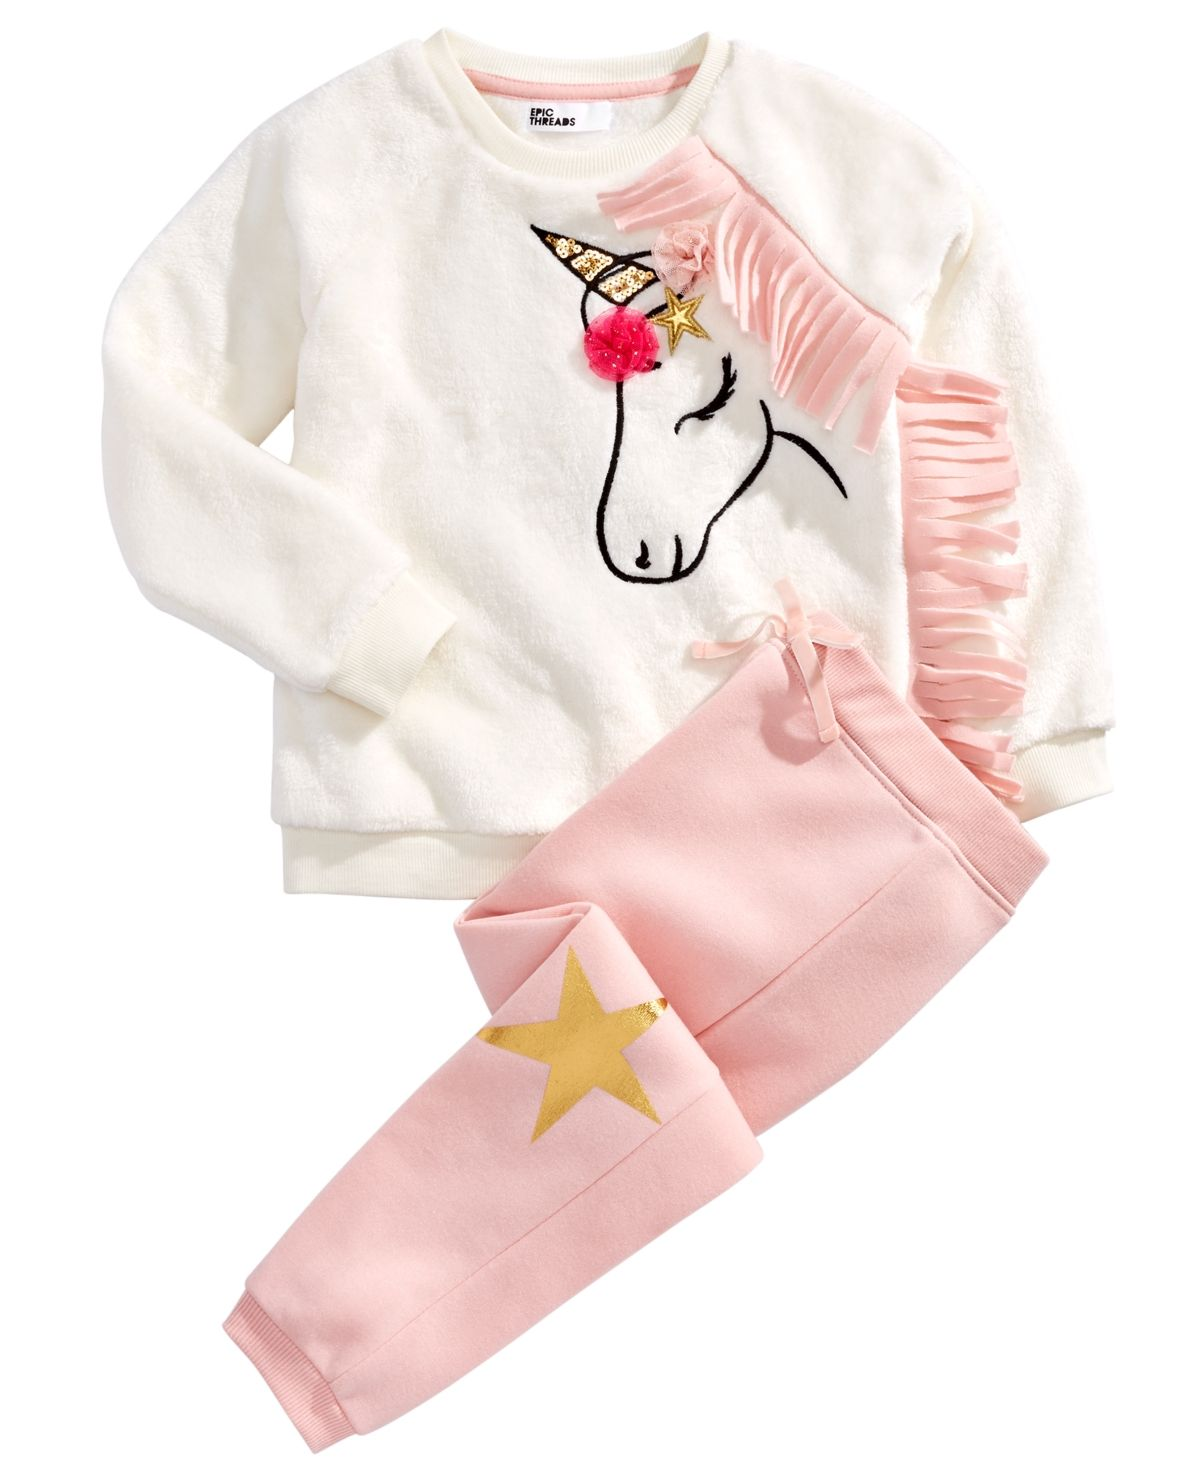 ***GARANIMALS 2 PIECE SET SWEAT SHIRT /&  pants c